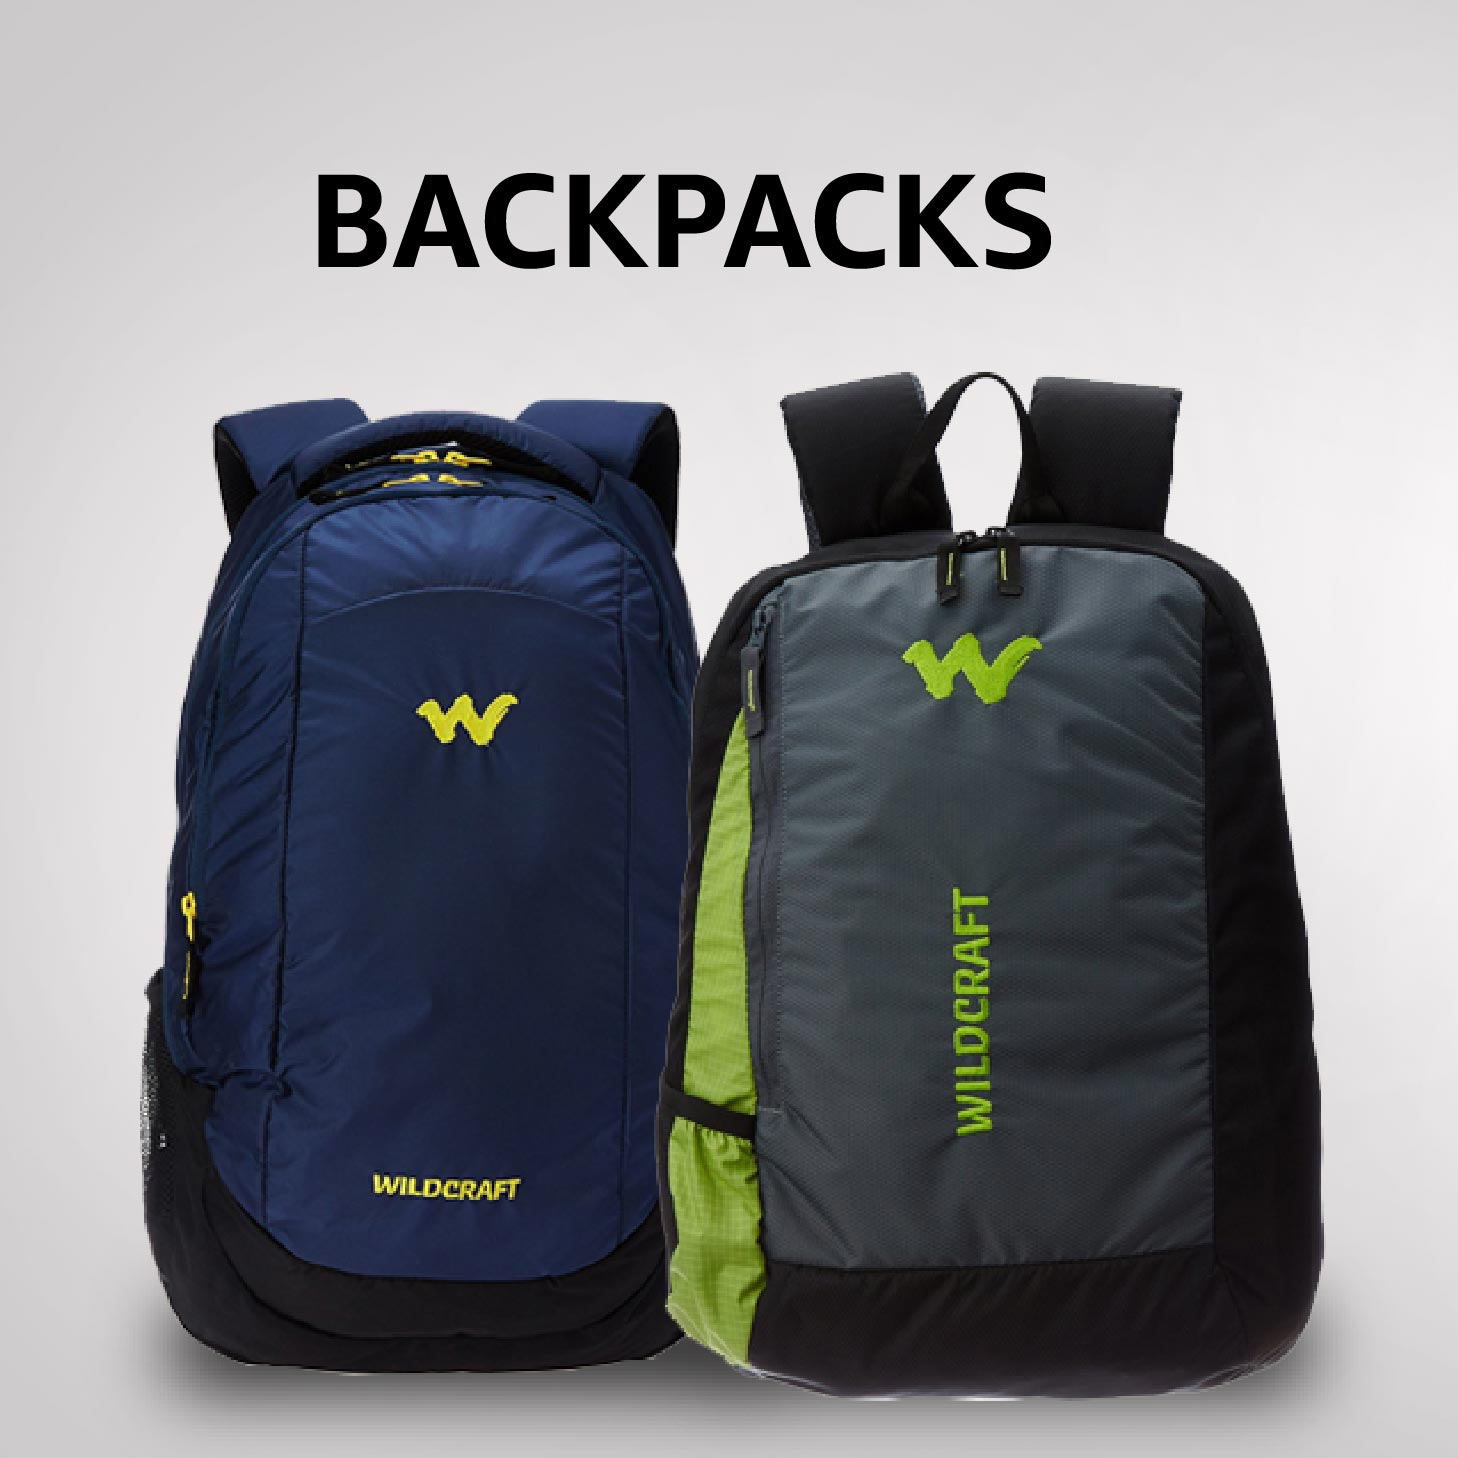 Wildcraft Luggage & Bags Online: Buy Wildcraft Wallets, Luggage ...